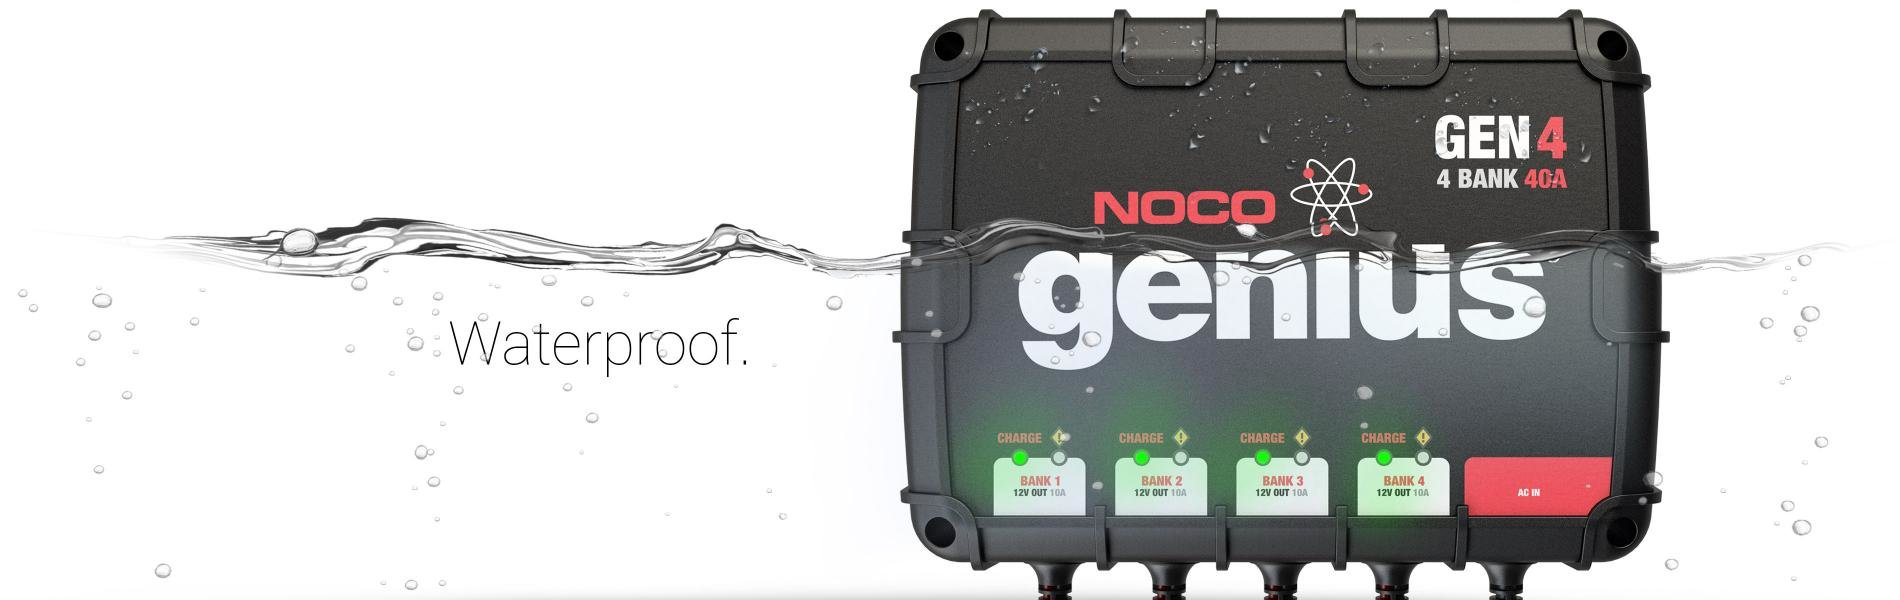 Noco 12 Volt 40 Amp Genius 4 Bank Battery Charger Made In The Usa Wiring Diagram Fully Submersible 100 Completely Sealed Waterproof On Board Designed To Operate Extreme Conditions With A Shock